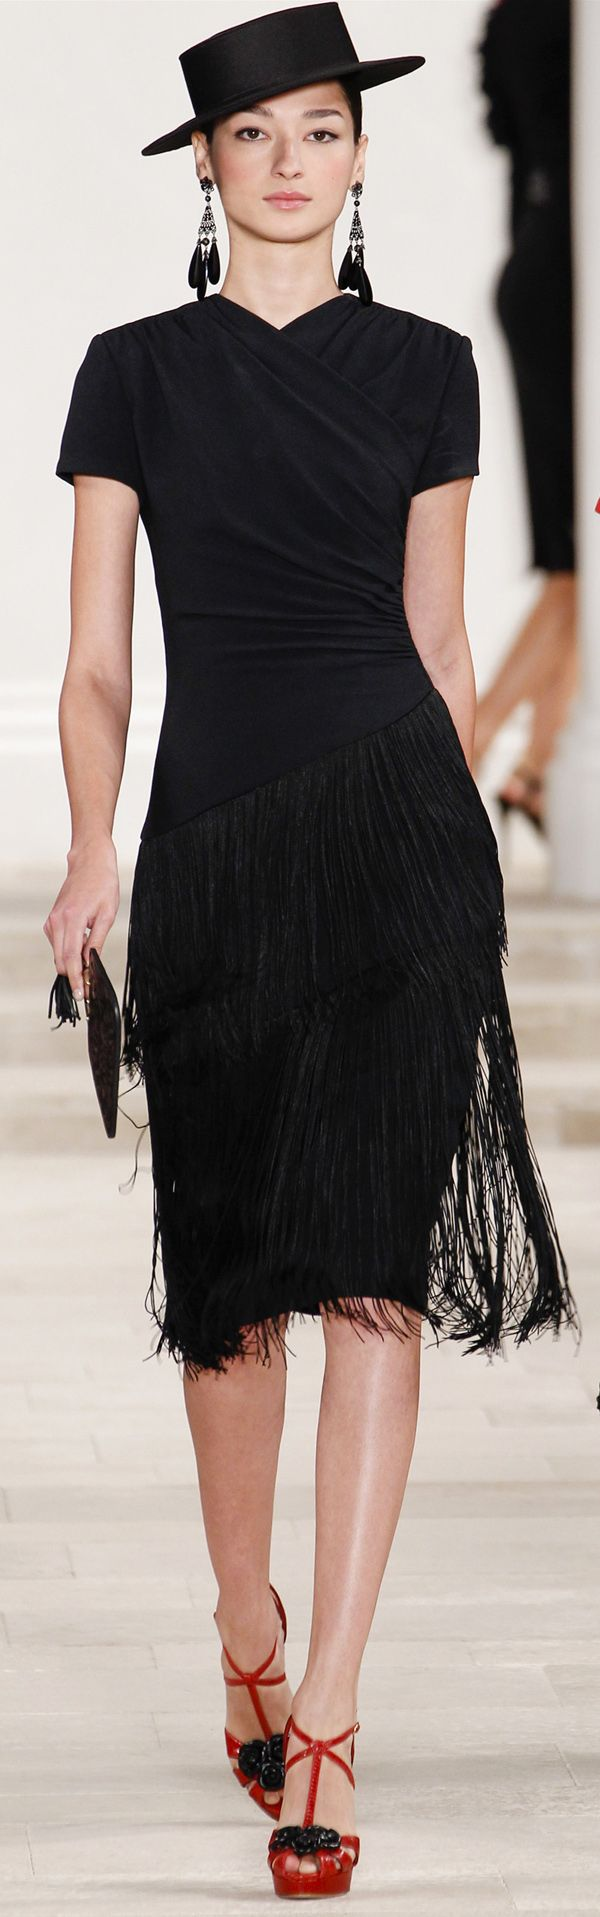 ✜ Ralph Lauren SS 2013 ✜ http://www.vogue.com/collections/spring-2013-rtw/ralph-lauren/review/#